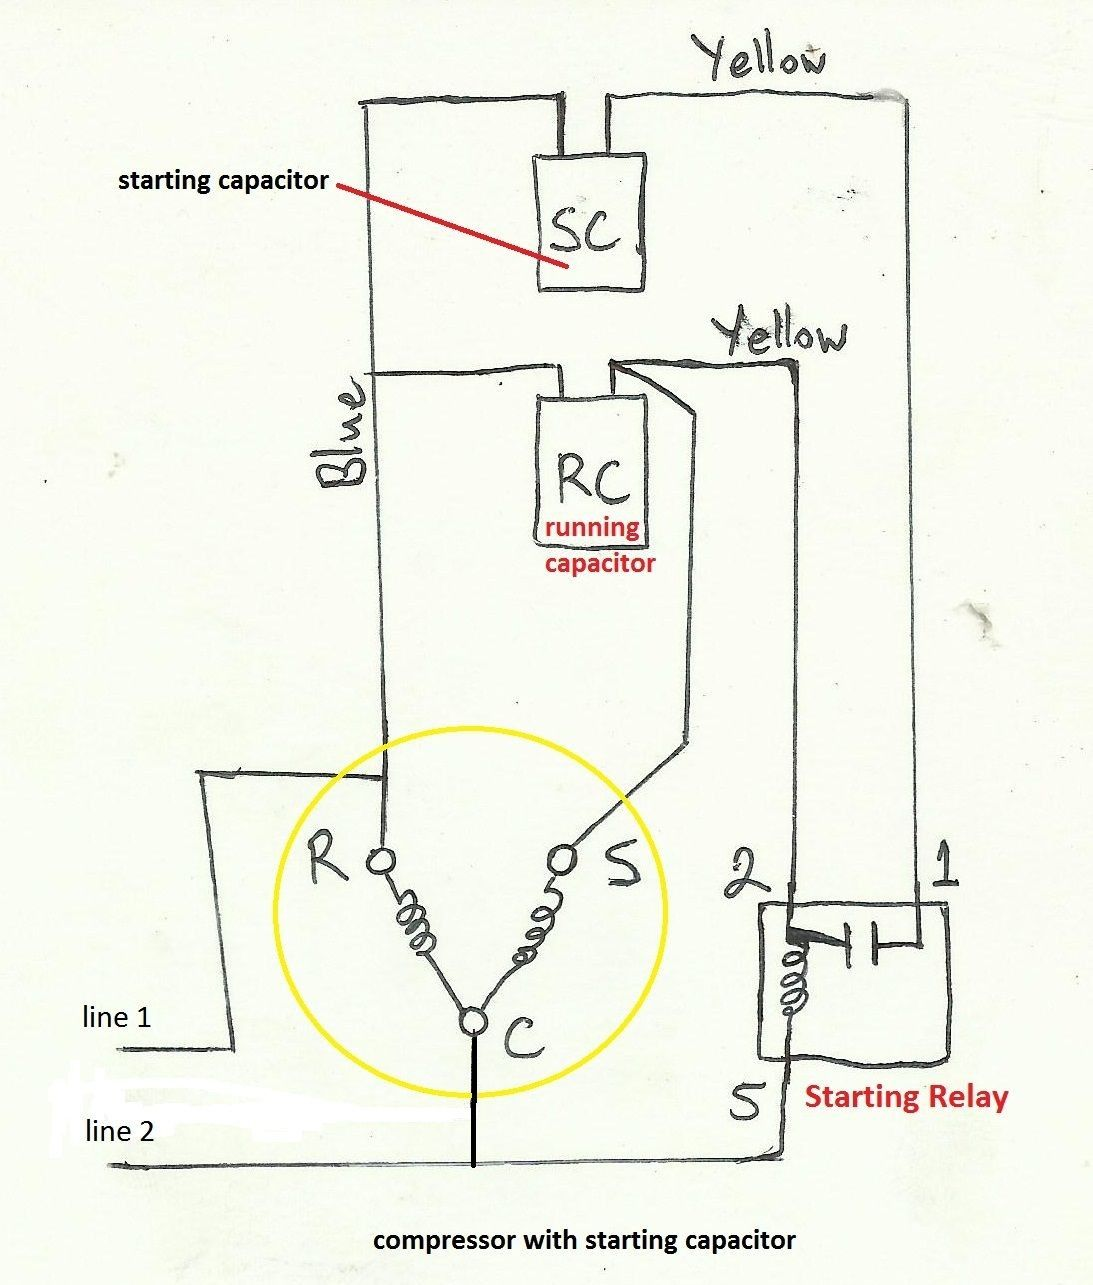 Unique Single Phase Capacitor Start Capacitor Run Motor Wiring Diagram |  Electrical wiring diagram, Electrical circuit diagram, CompressorPinterest